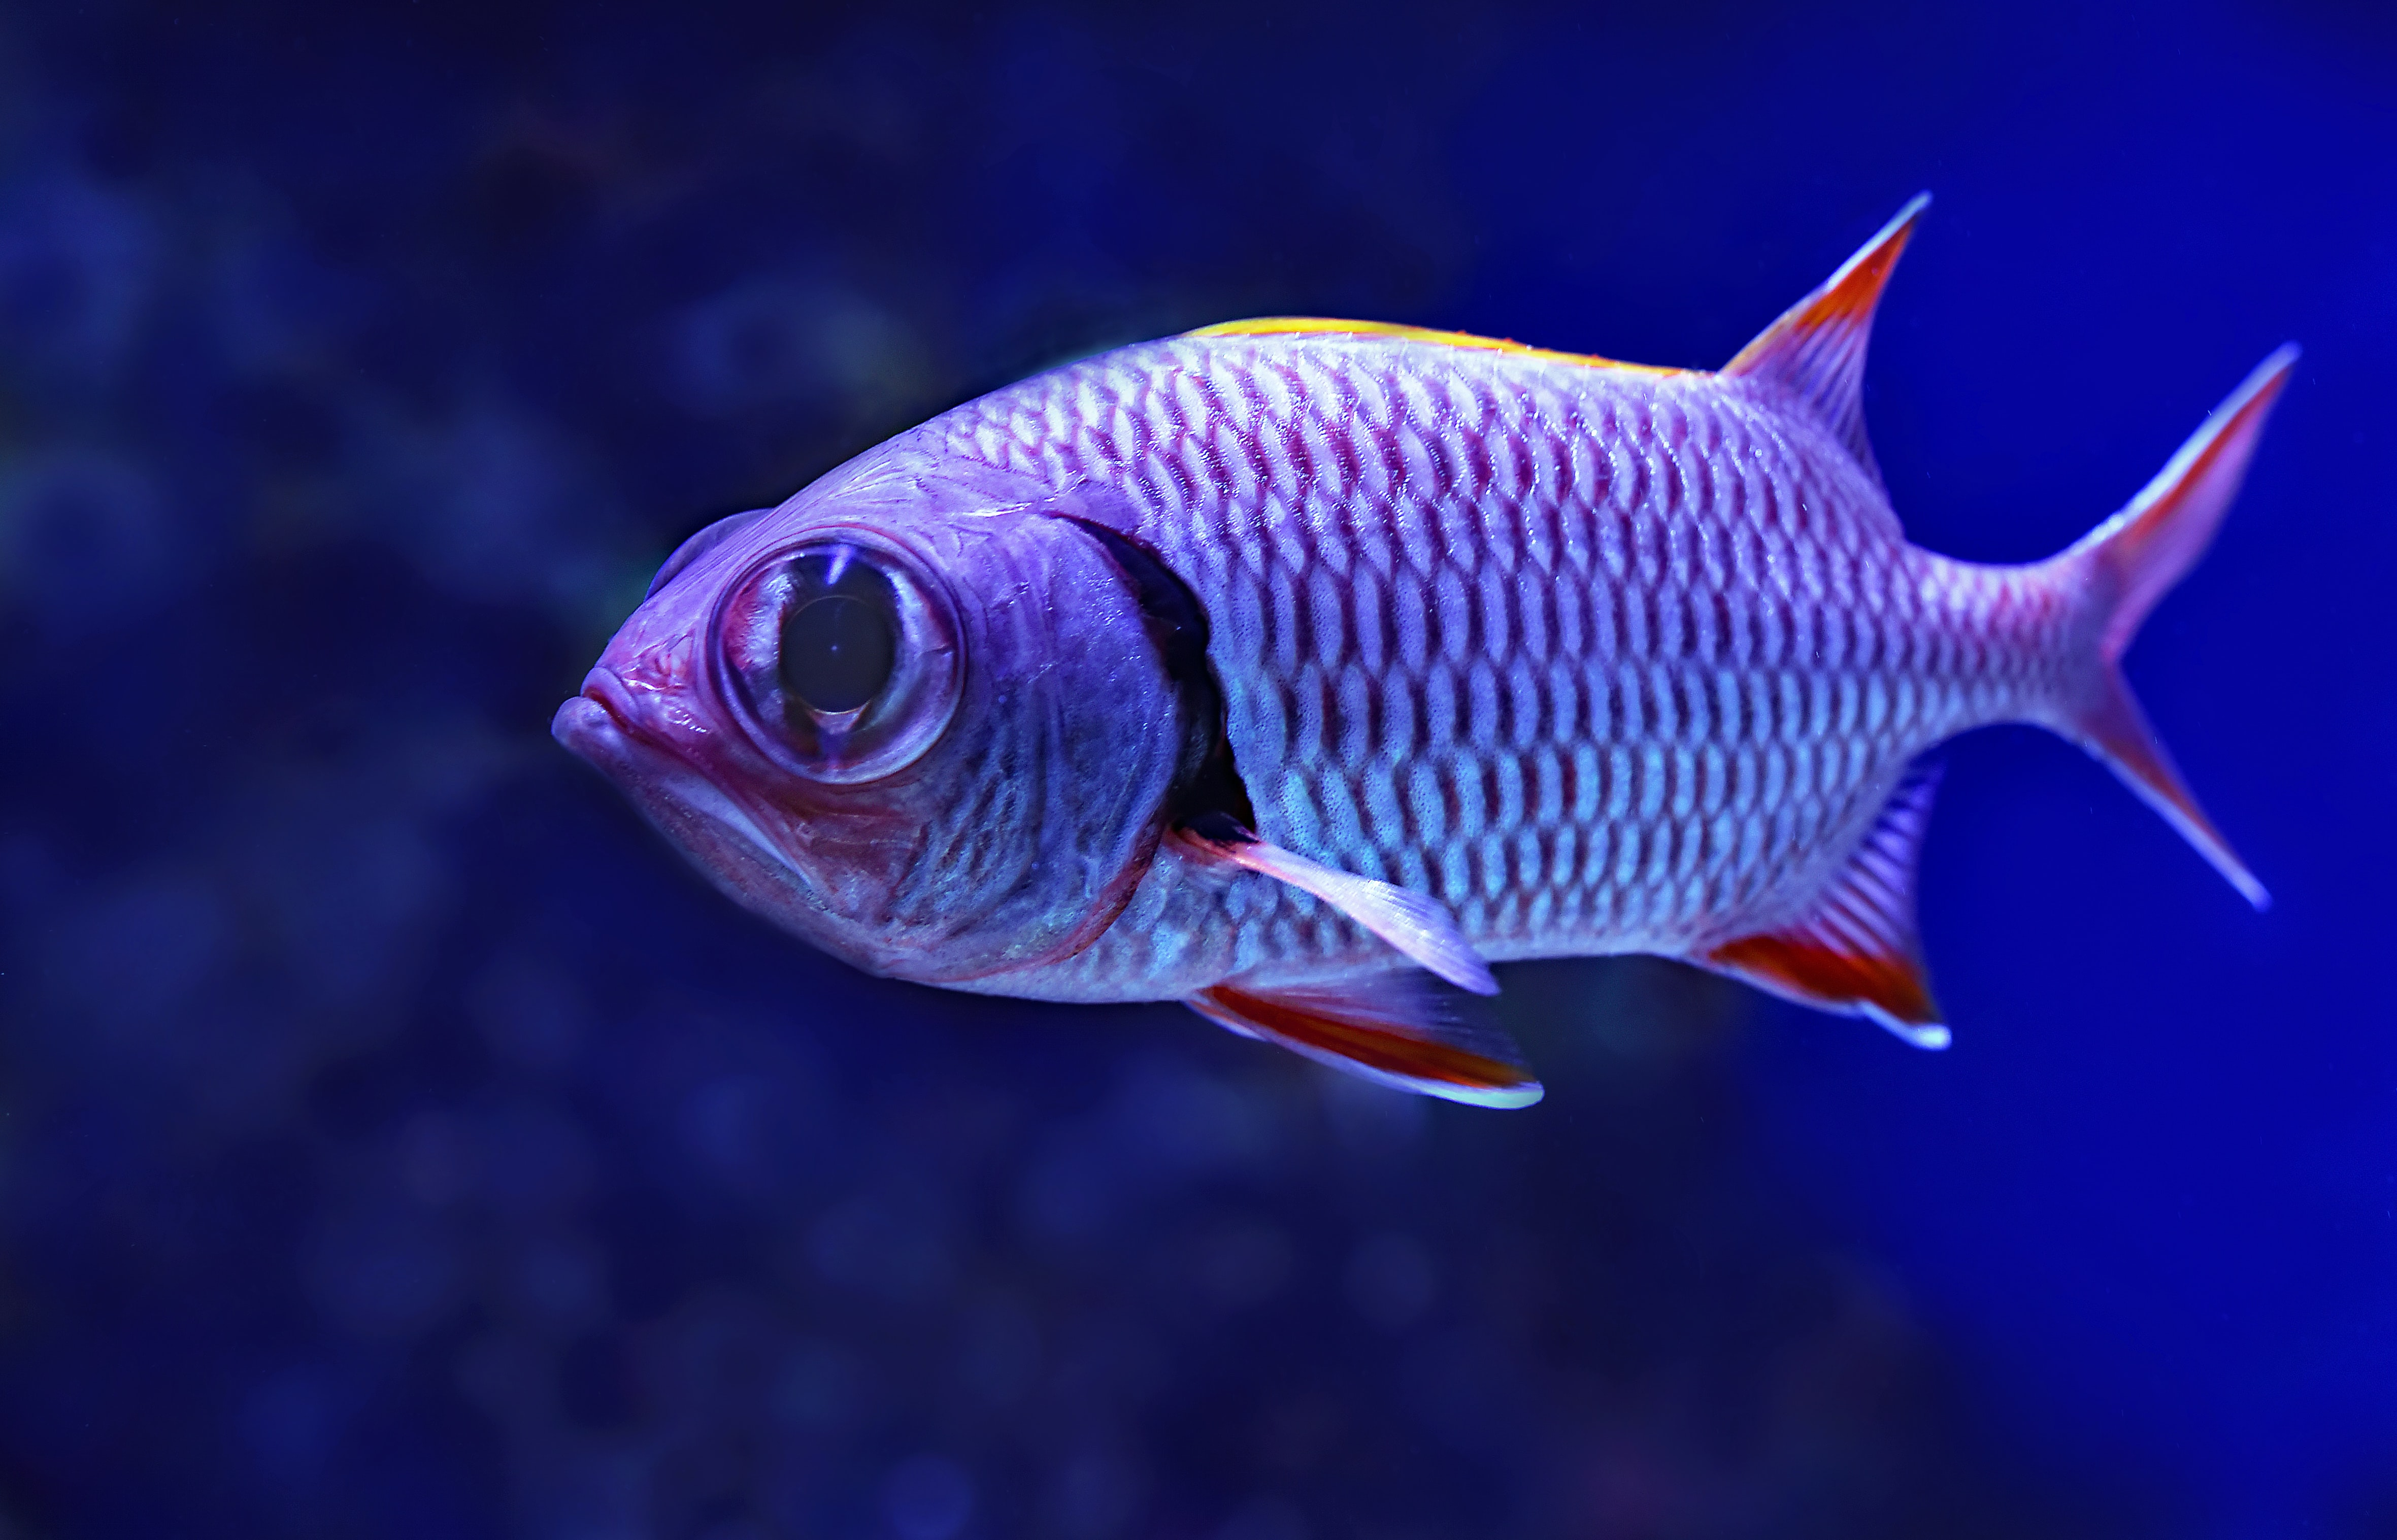 close-up photography of grey and red fish